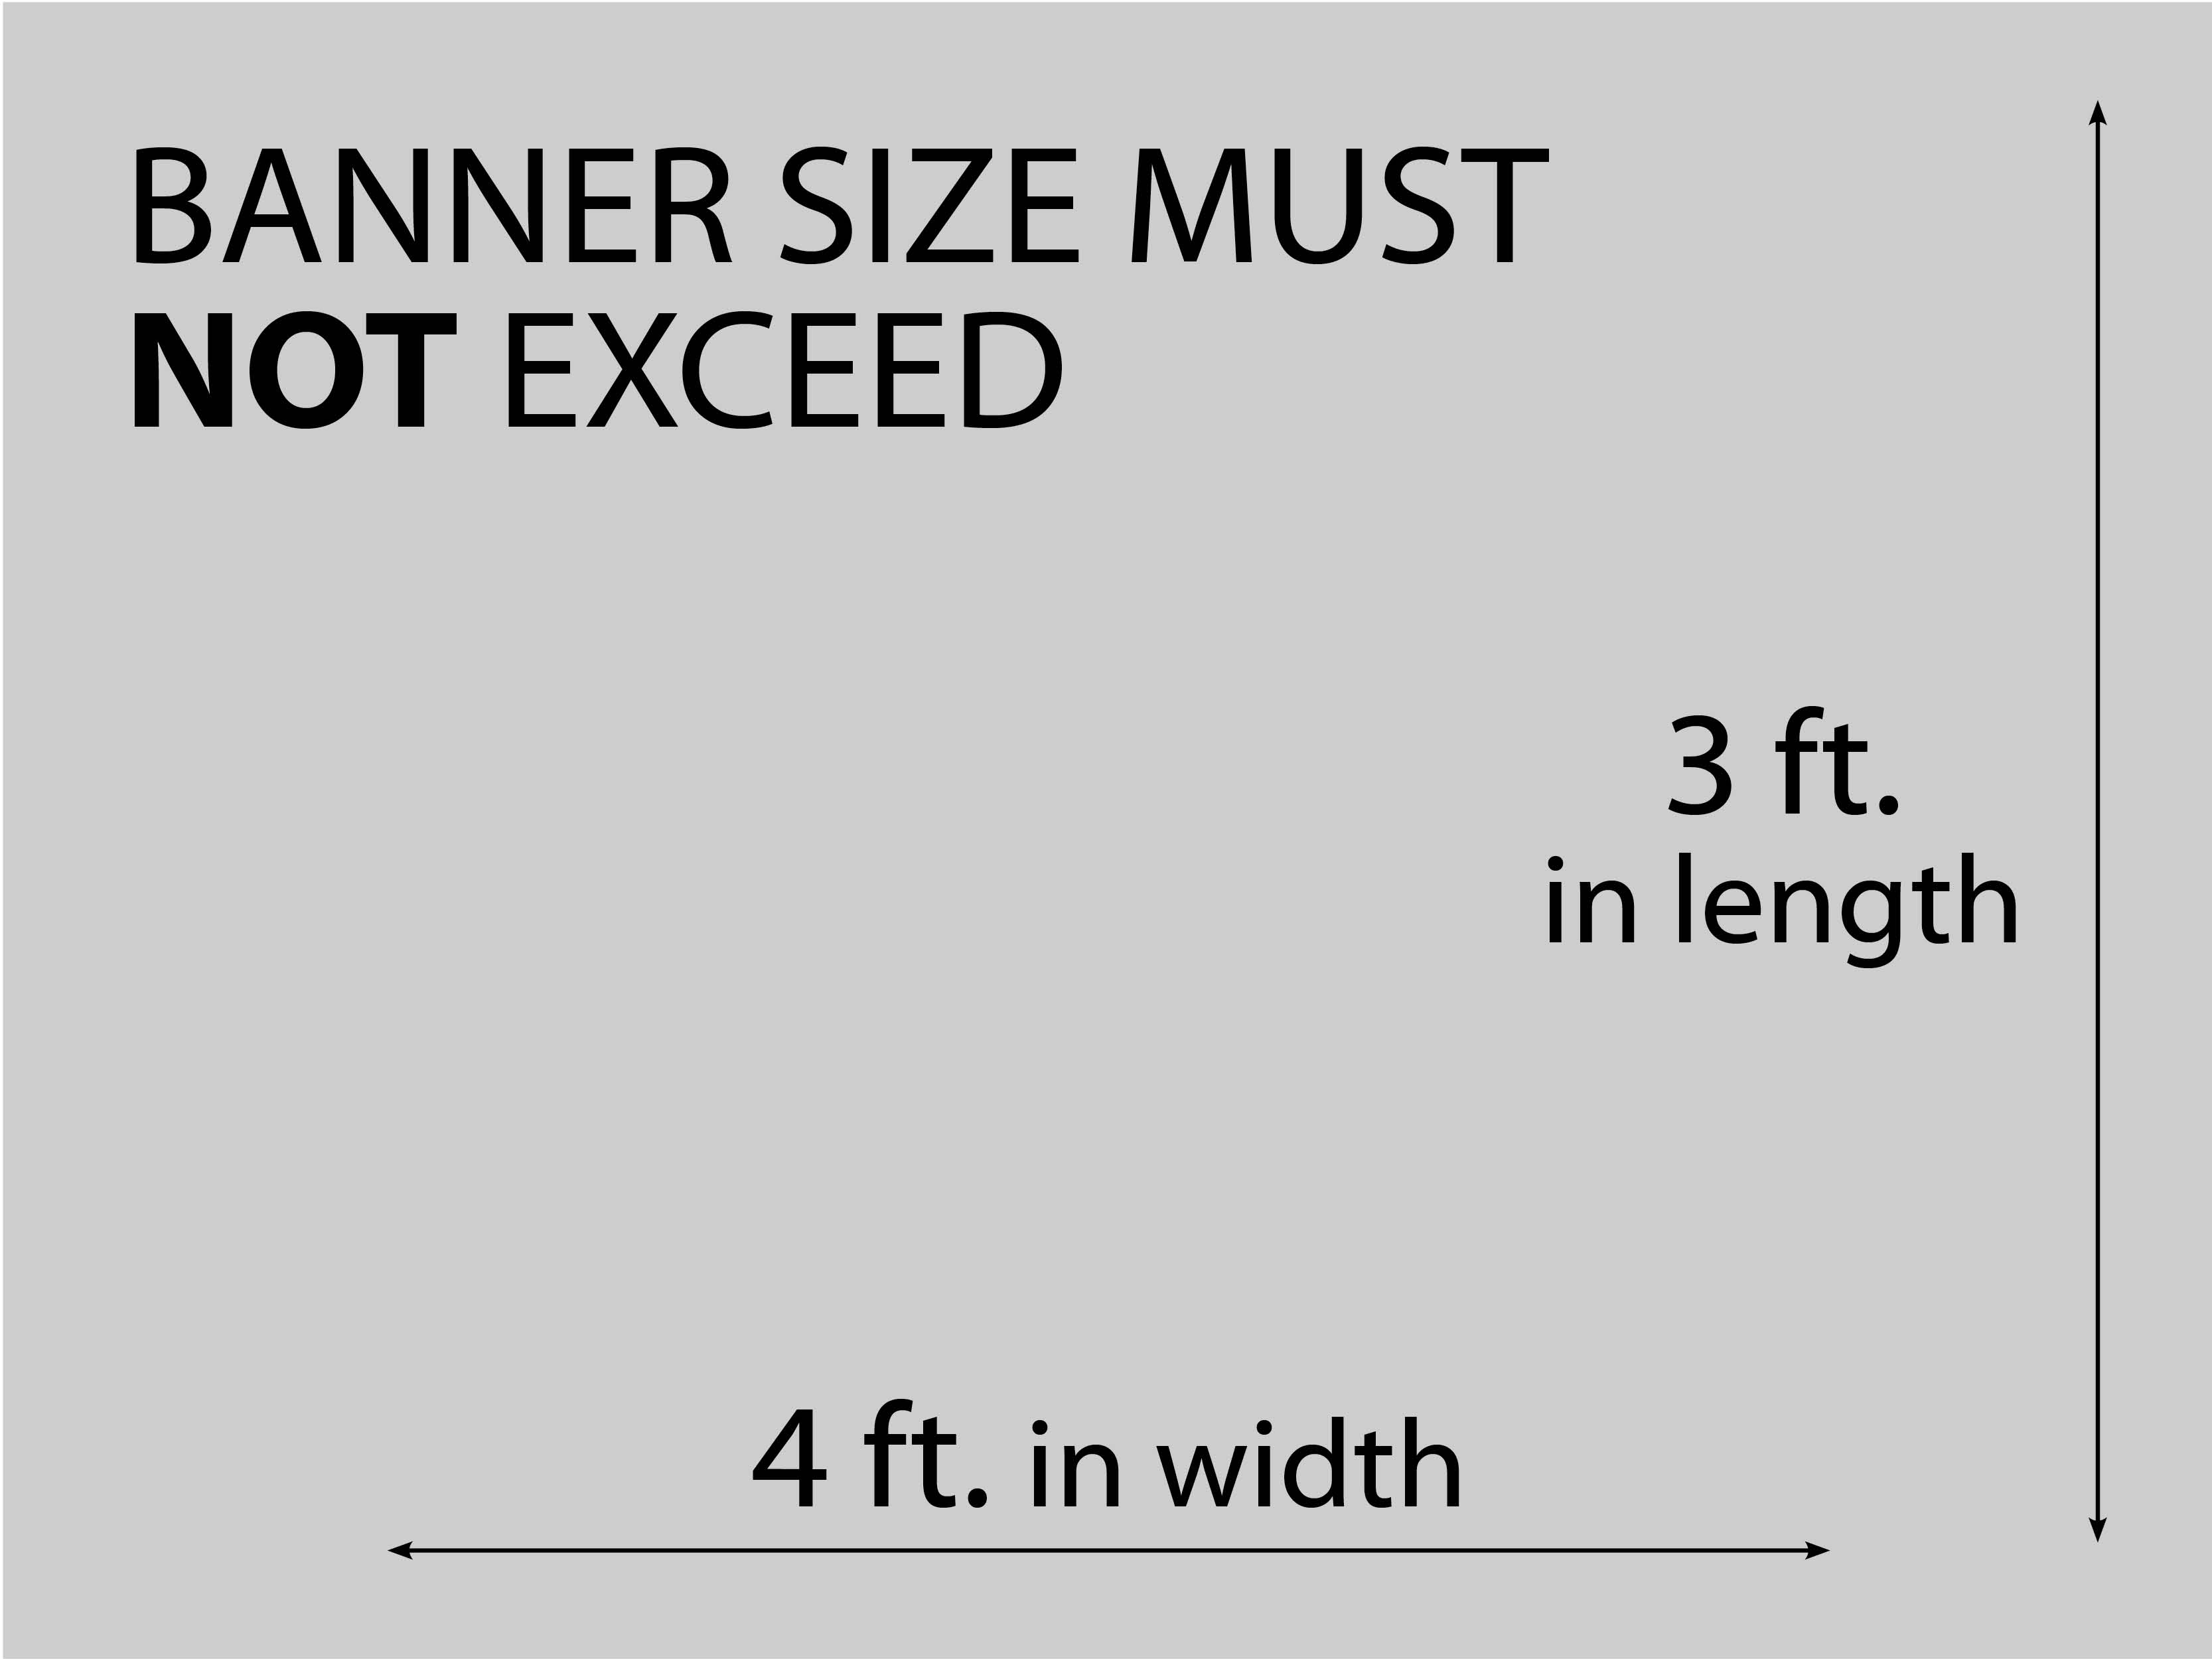 Image of the Acceptable Banner Sizes